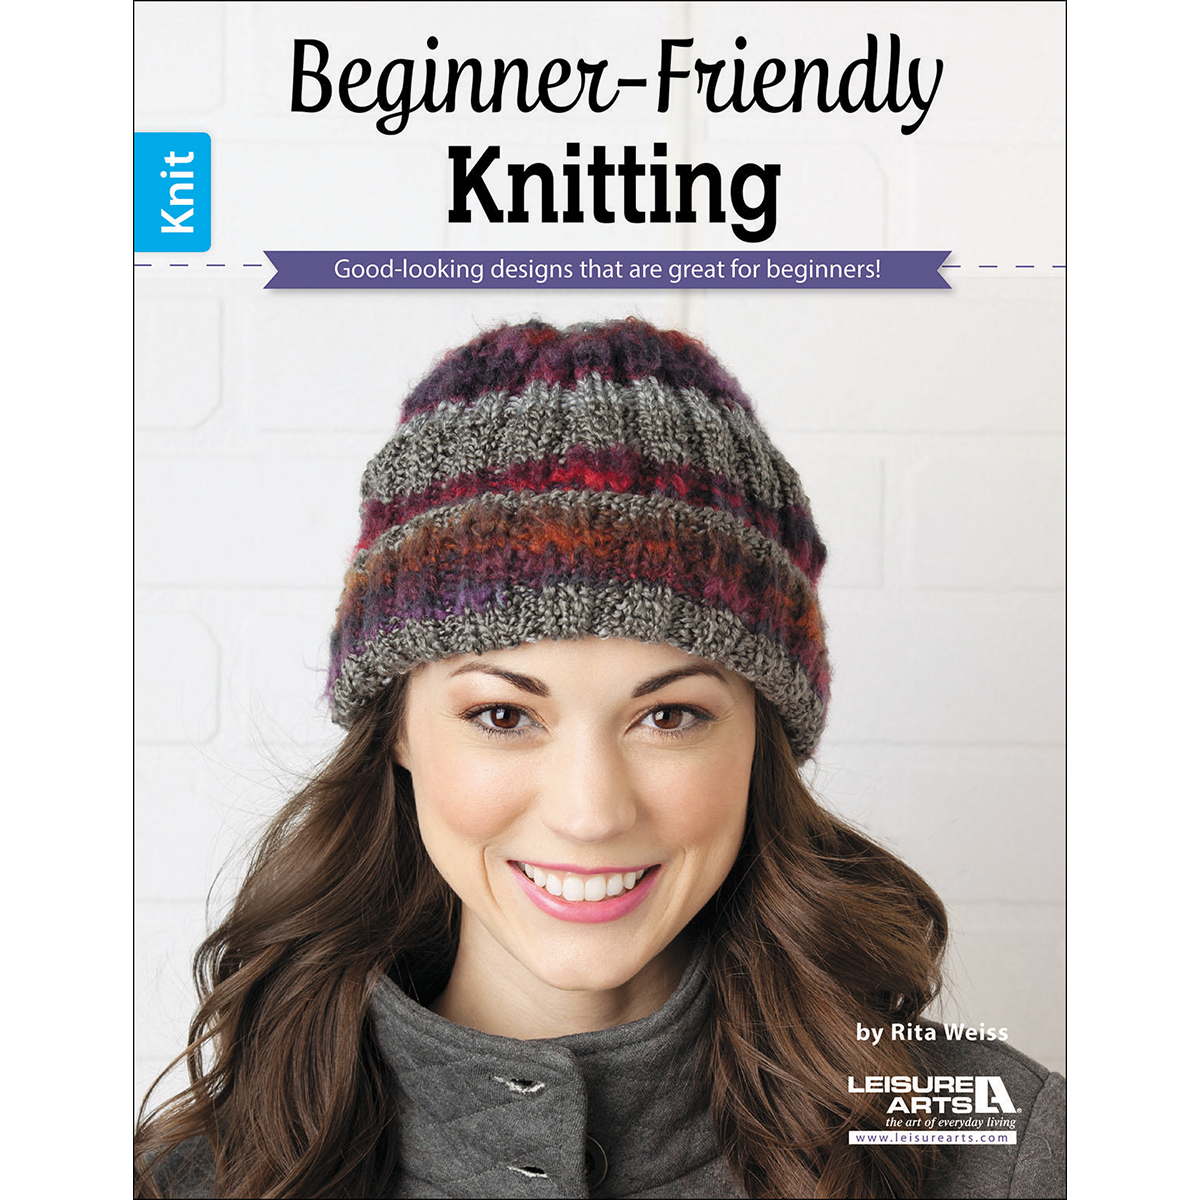 Leisure Arts Knitting Pattern Books : Leisure Arts Beginner Friendly Knitting